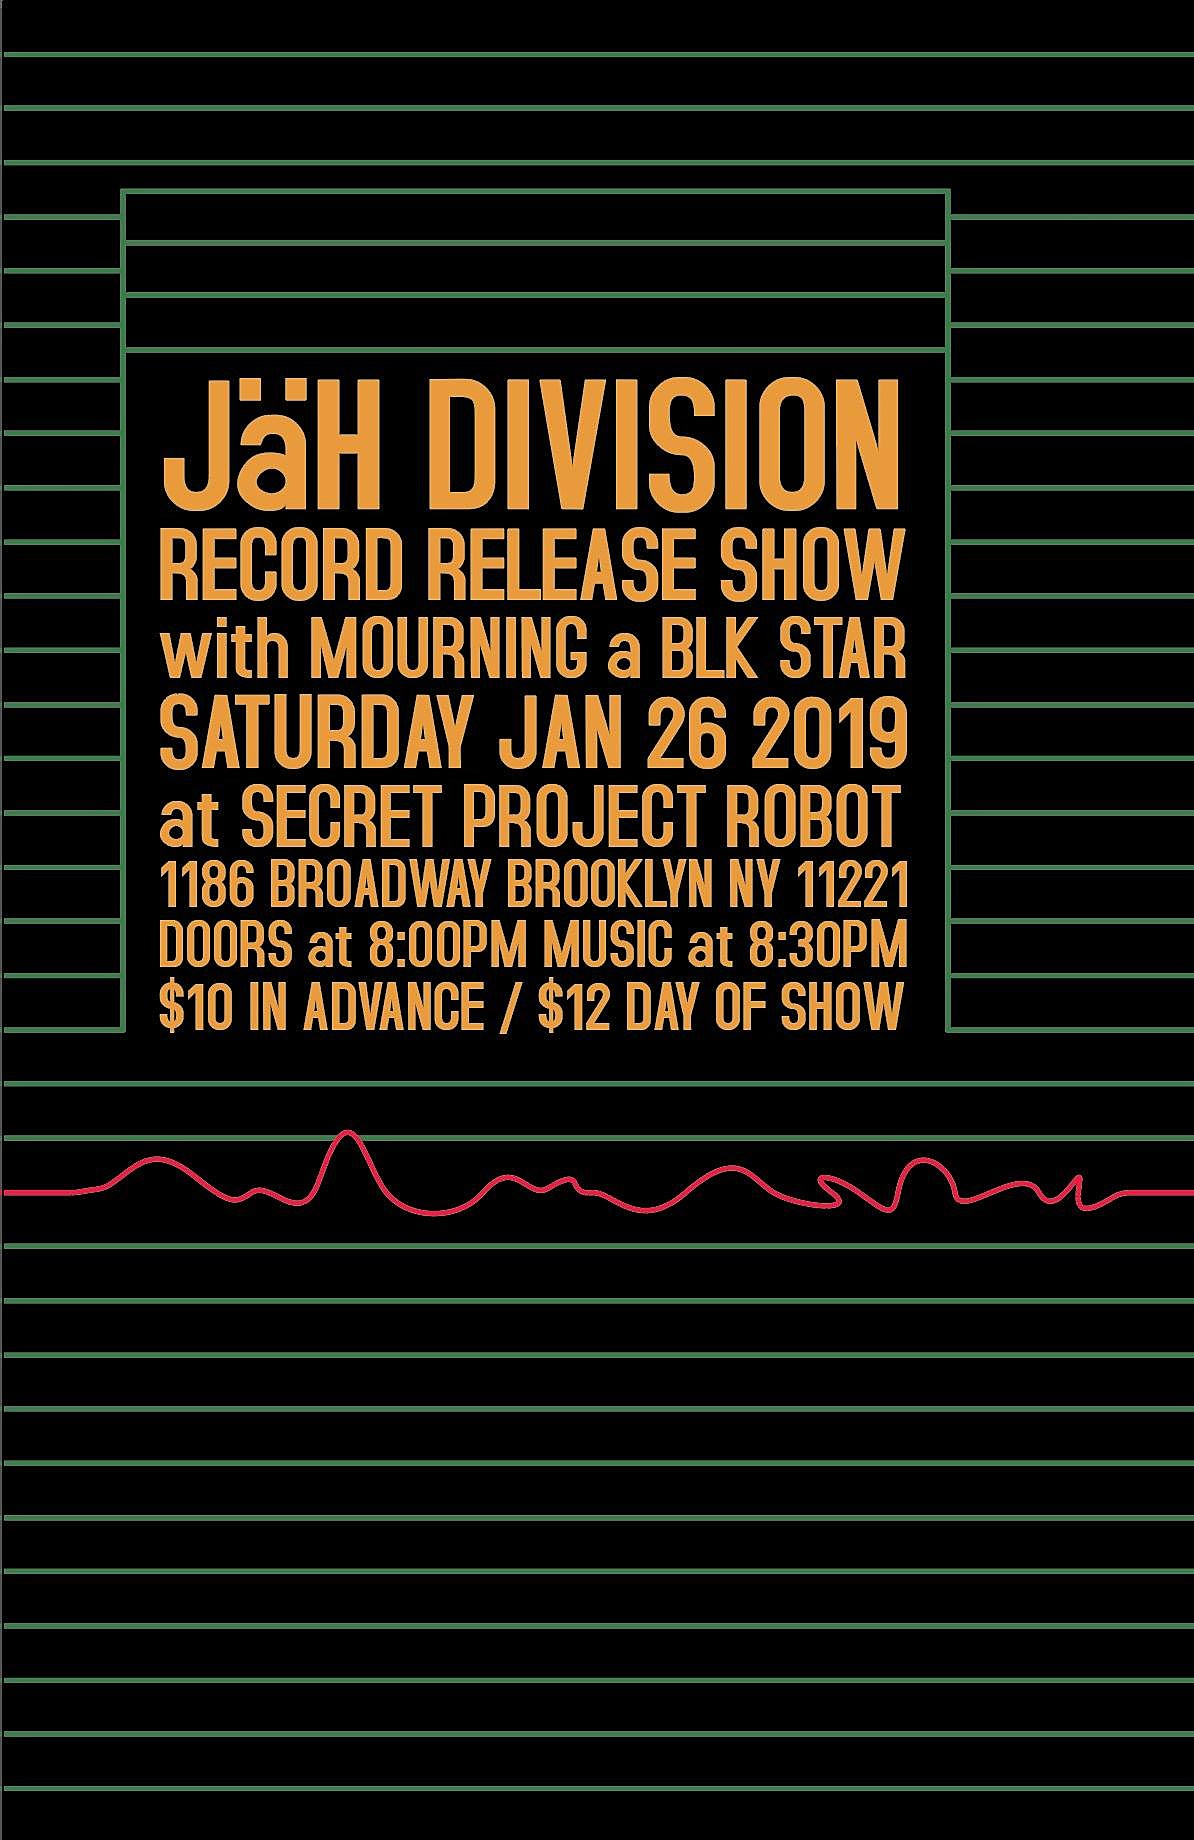 jah-division-release-show-poster